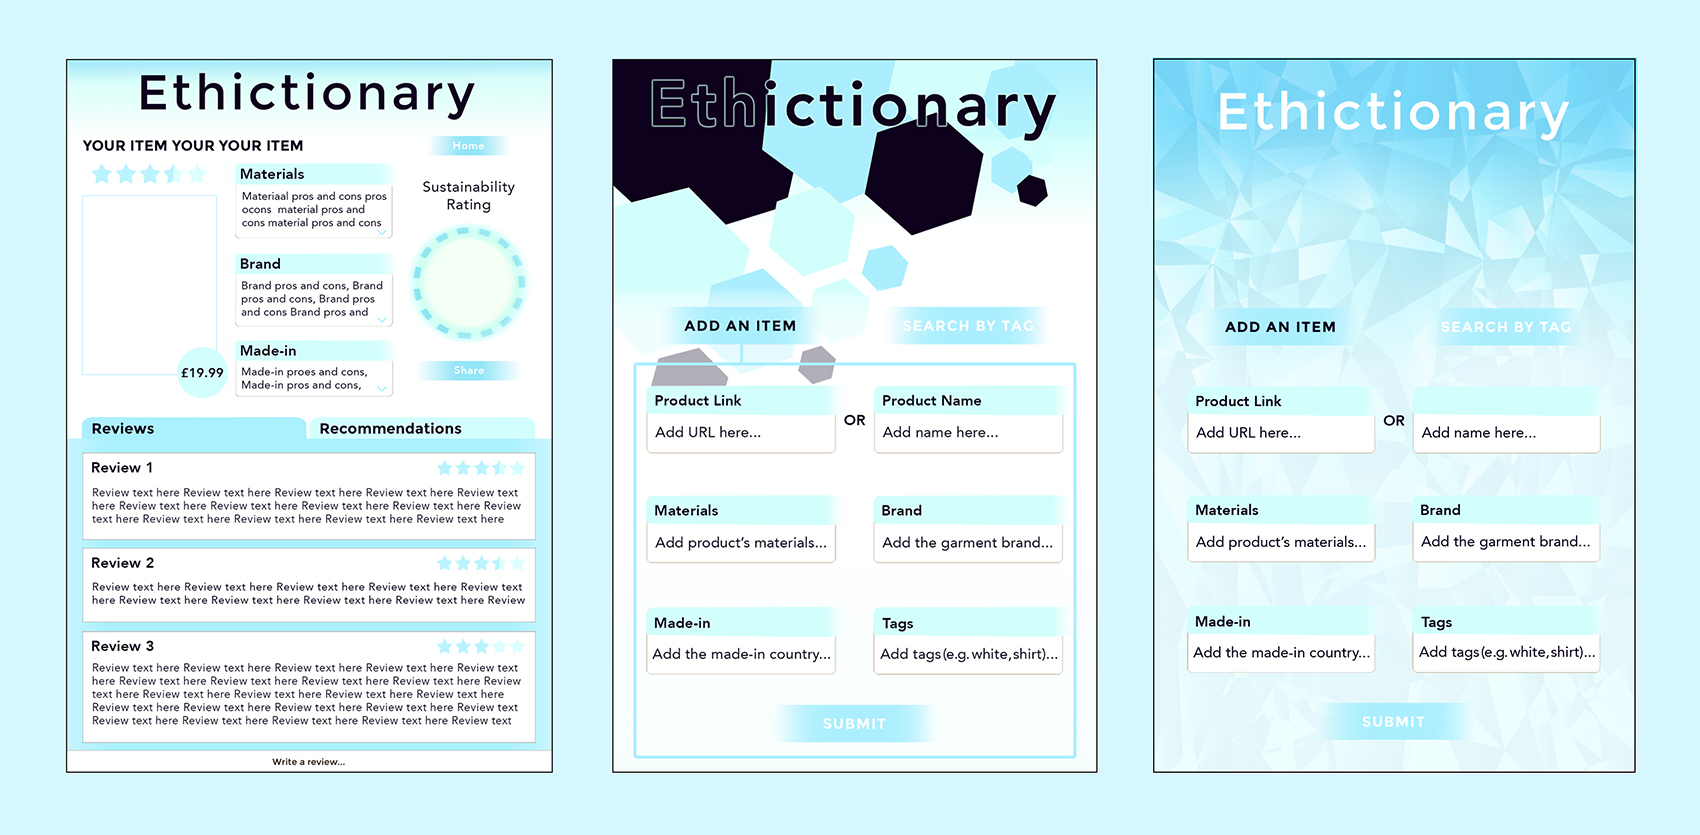 Ethictionary Early Iterations